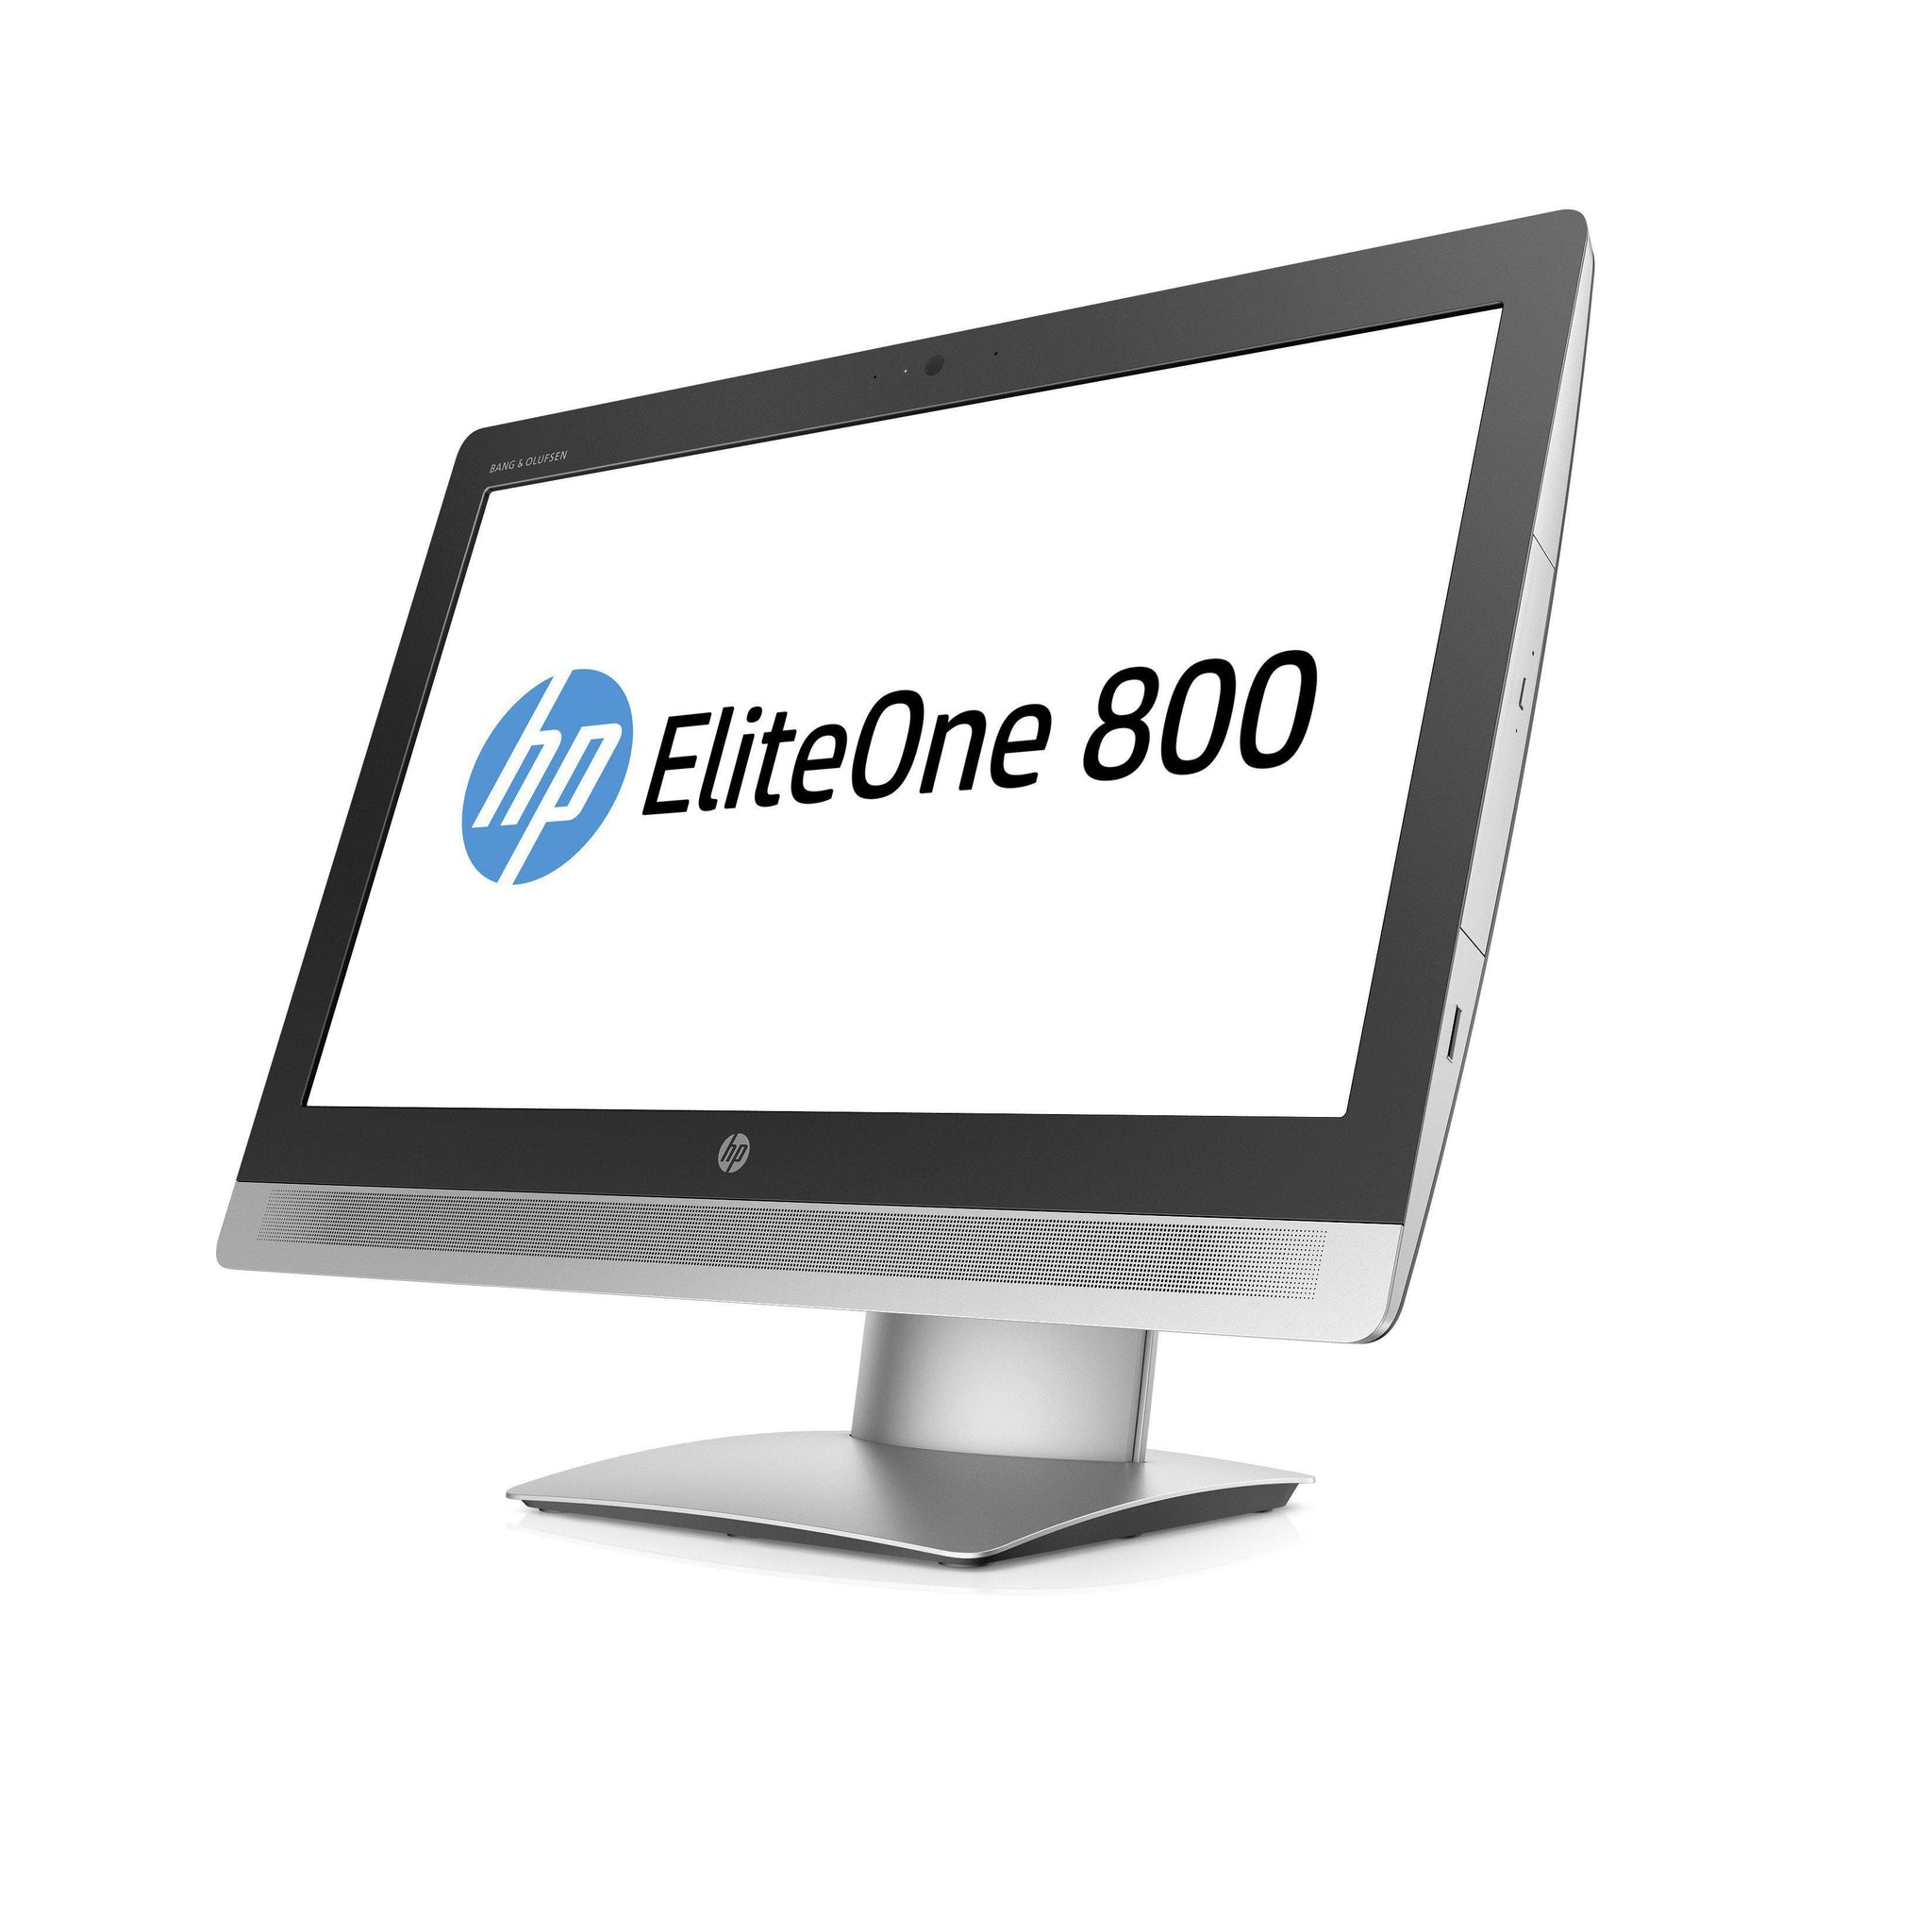 HP Eliteone 800 G2 Certified Refurbished 23